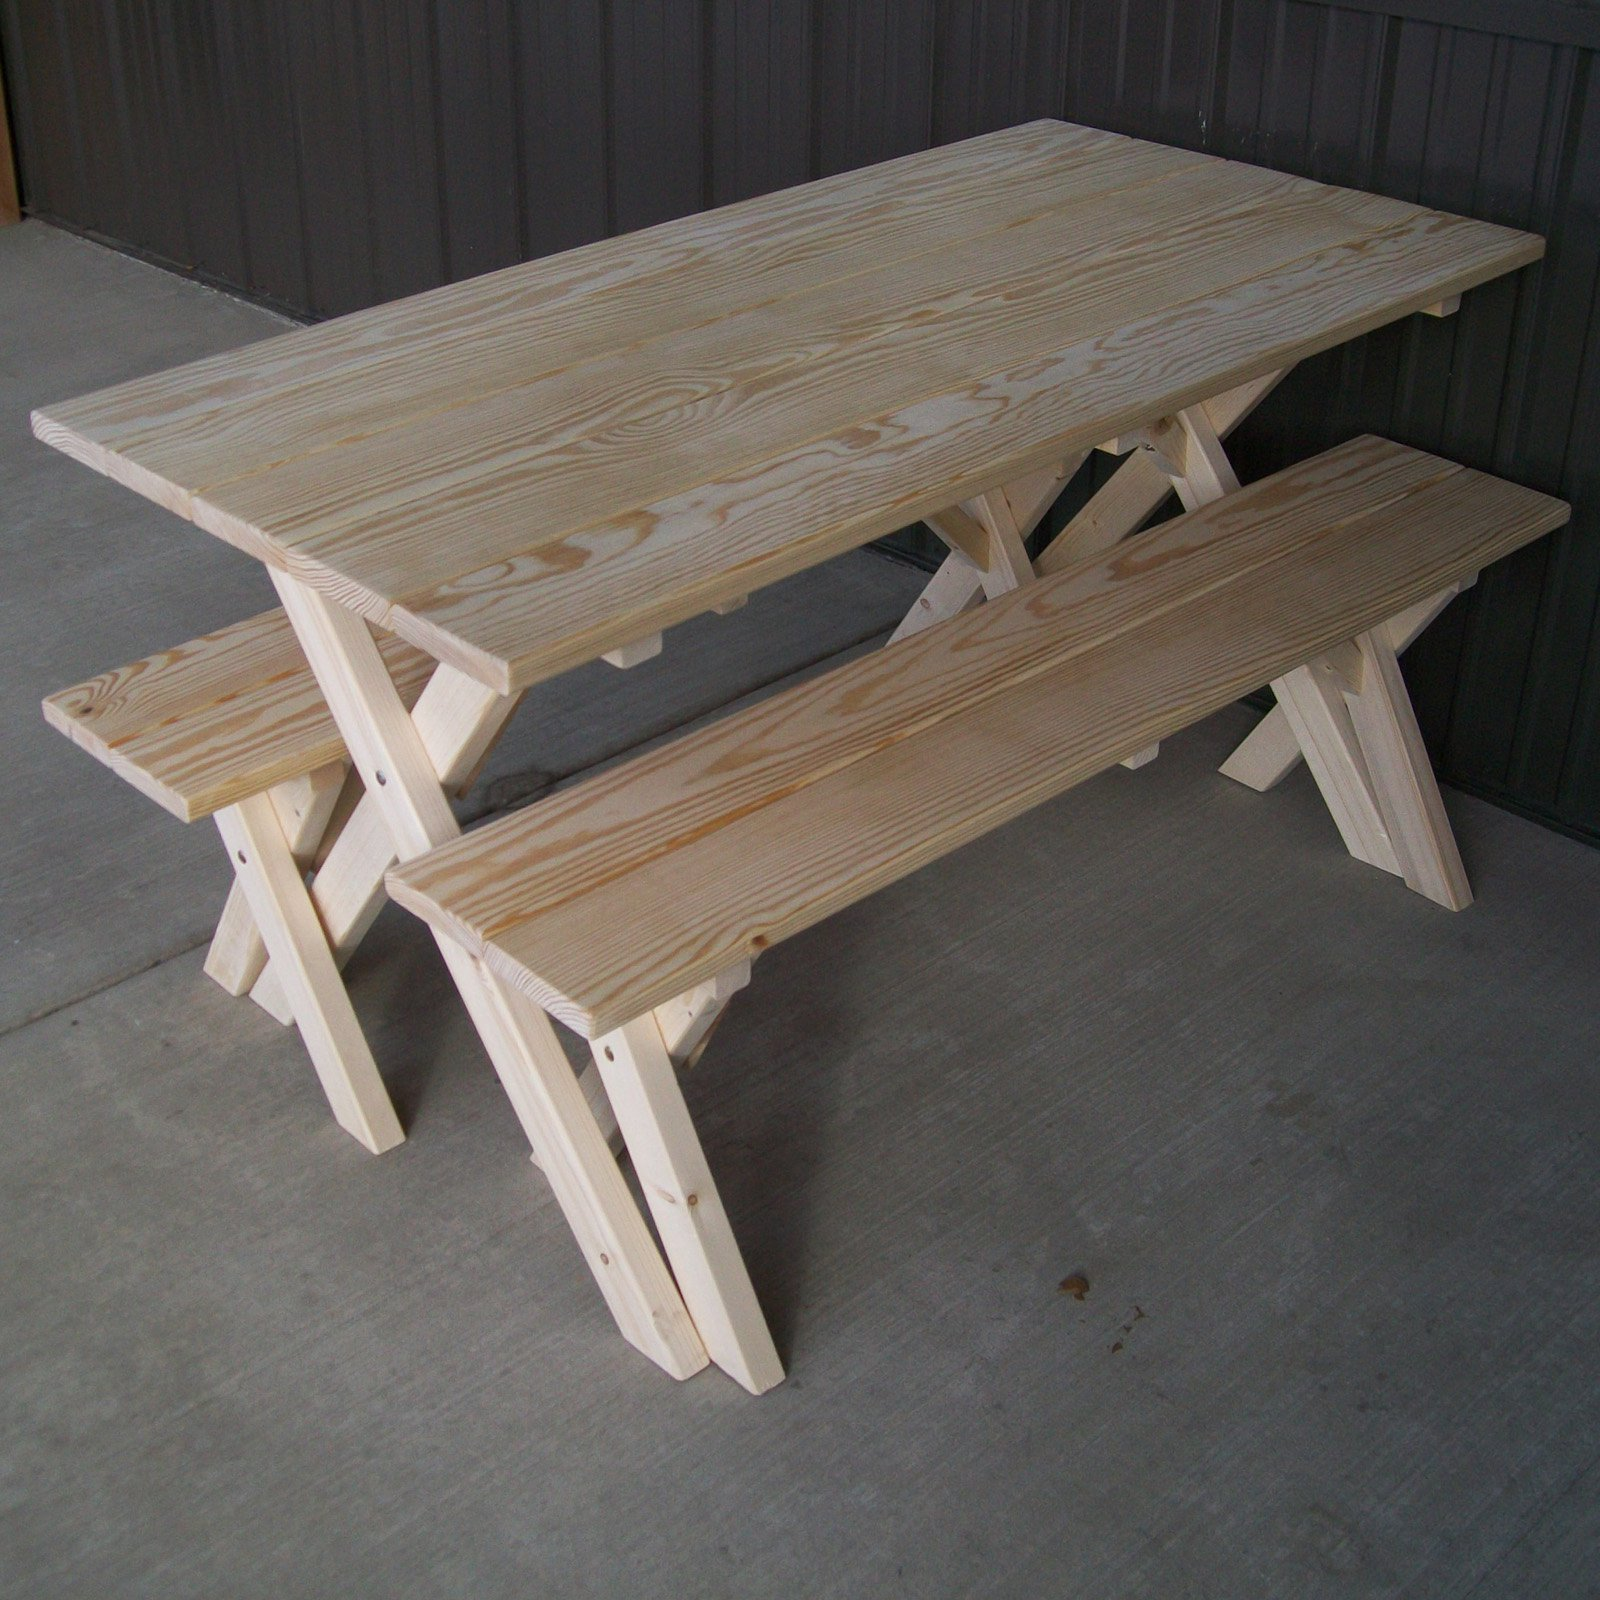 A U0026amp; L Furniture Pine Cross Legged Picnic Table With Benches    Walmart.com